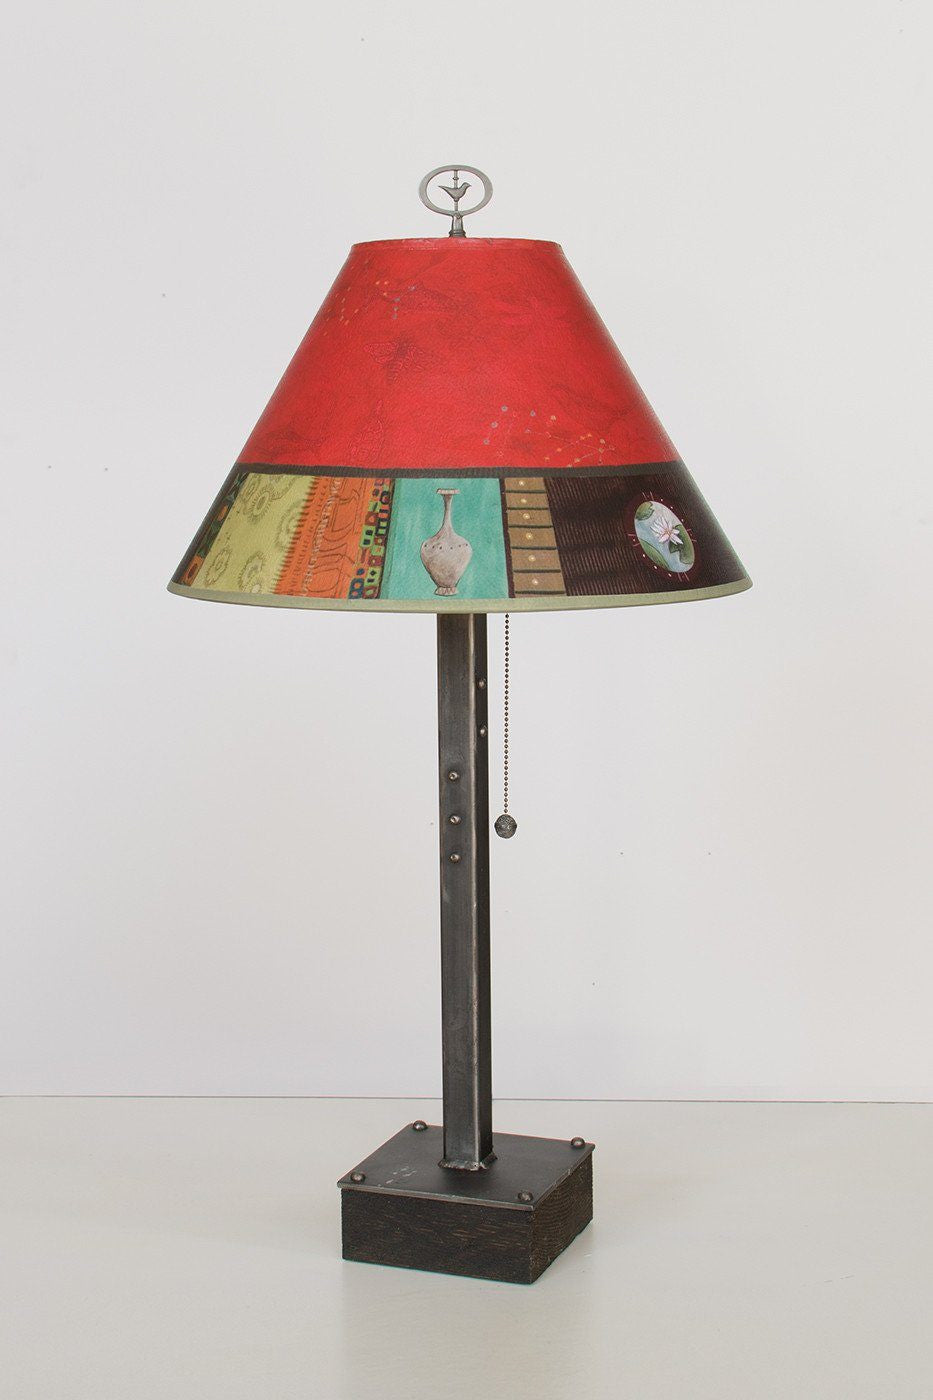 Steel Table Lamp on Wood with Medium Conical Shade in Red Match - Lit